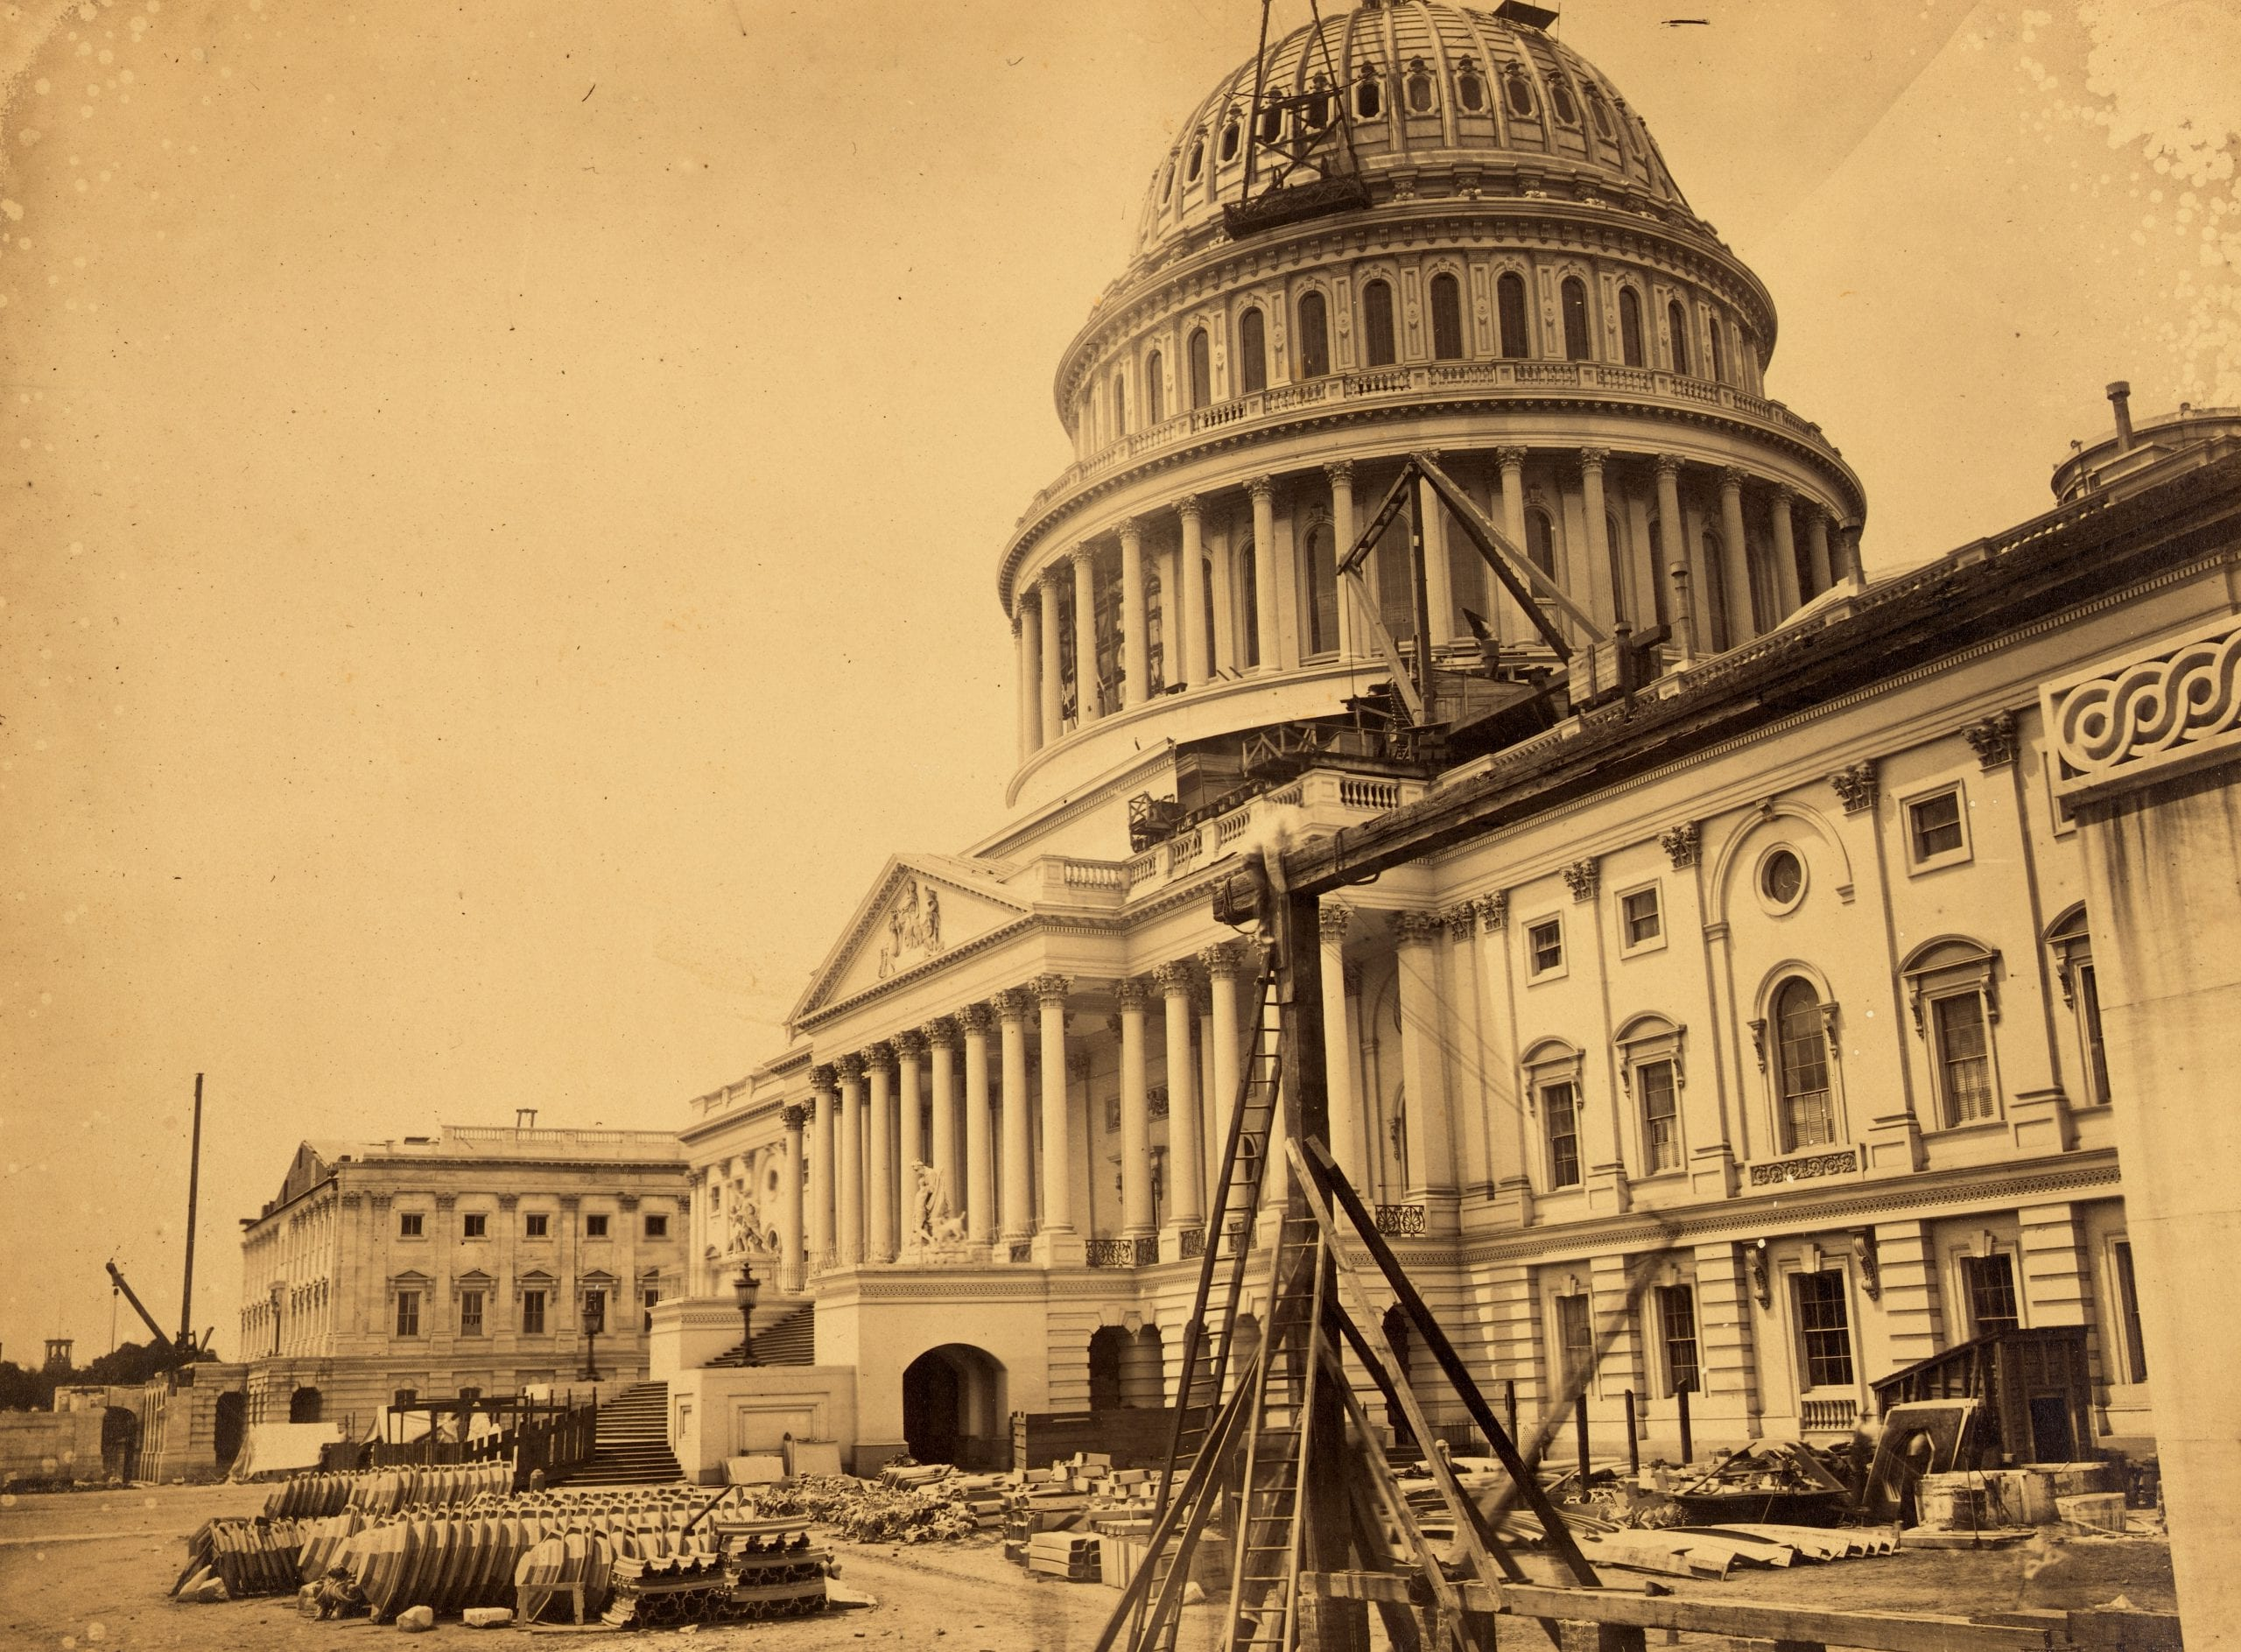 Capitol, Washington, D.C., north-east view. Dome and front unfinished, June 28, 1863.